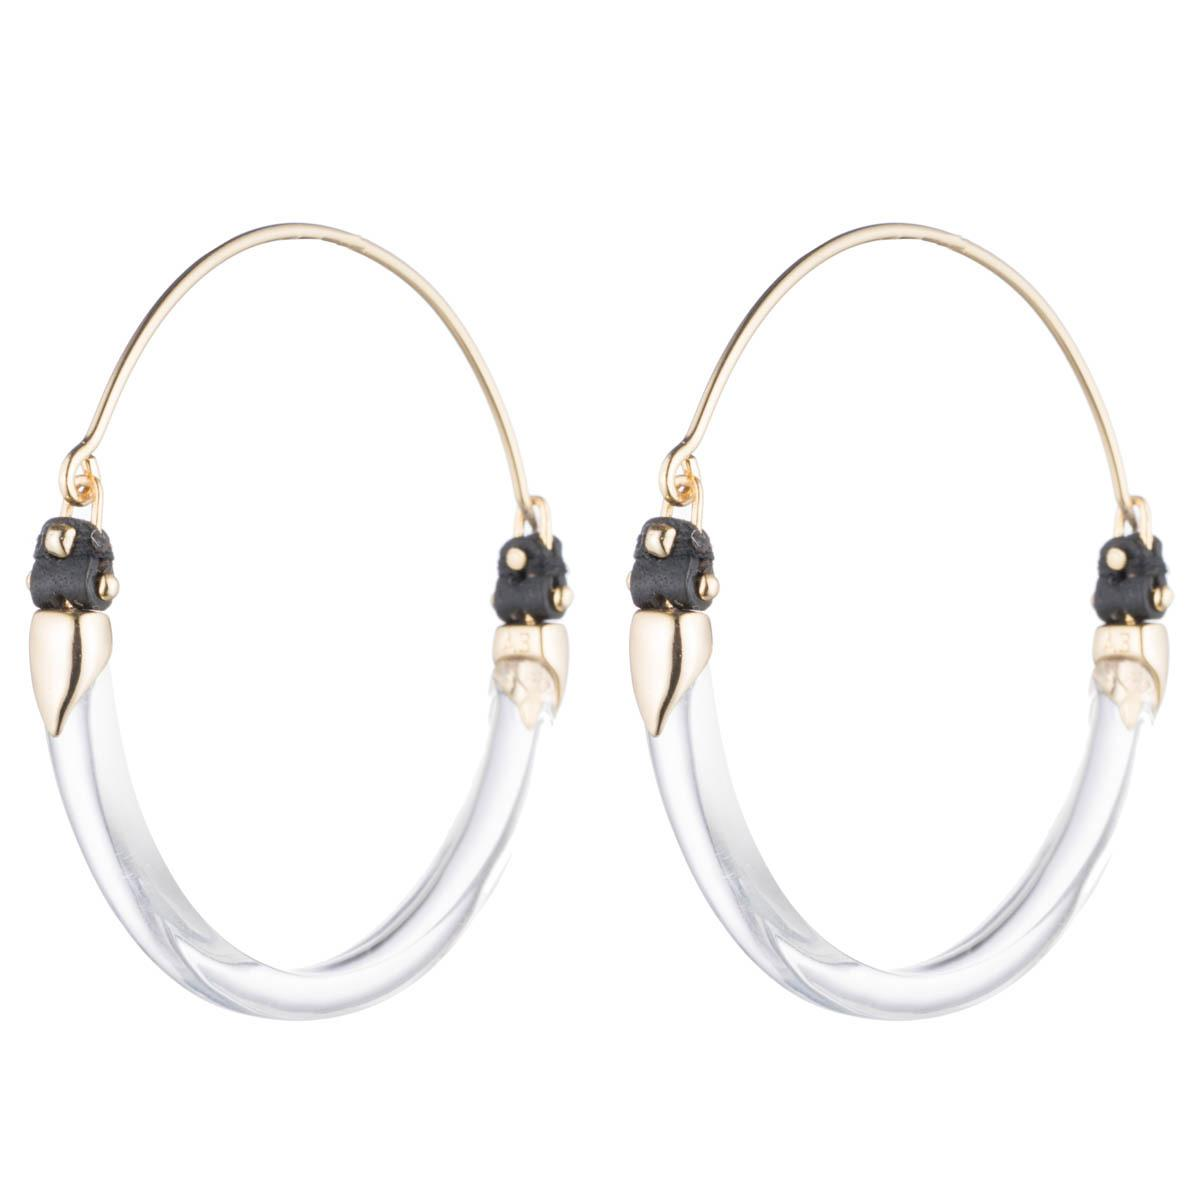 Alexis Bittar Leather Accented Hoop Earring Clear